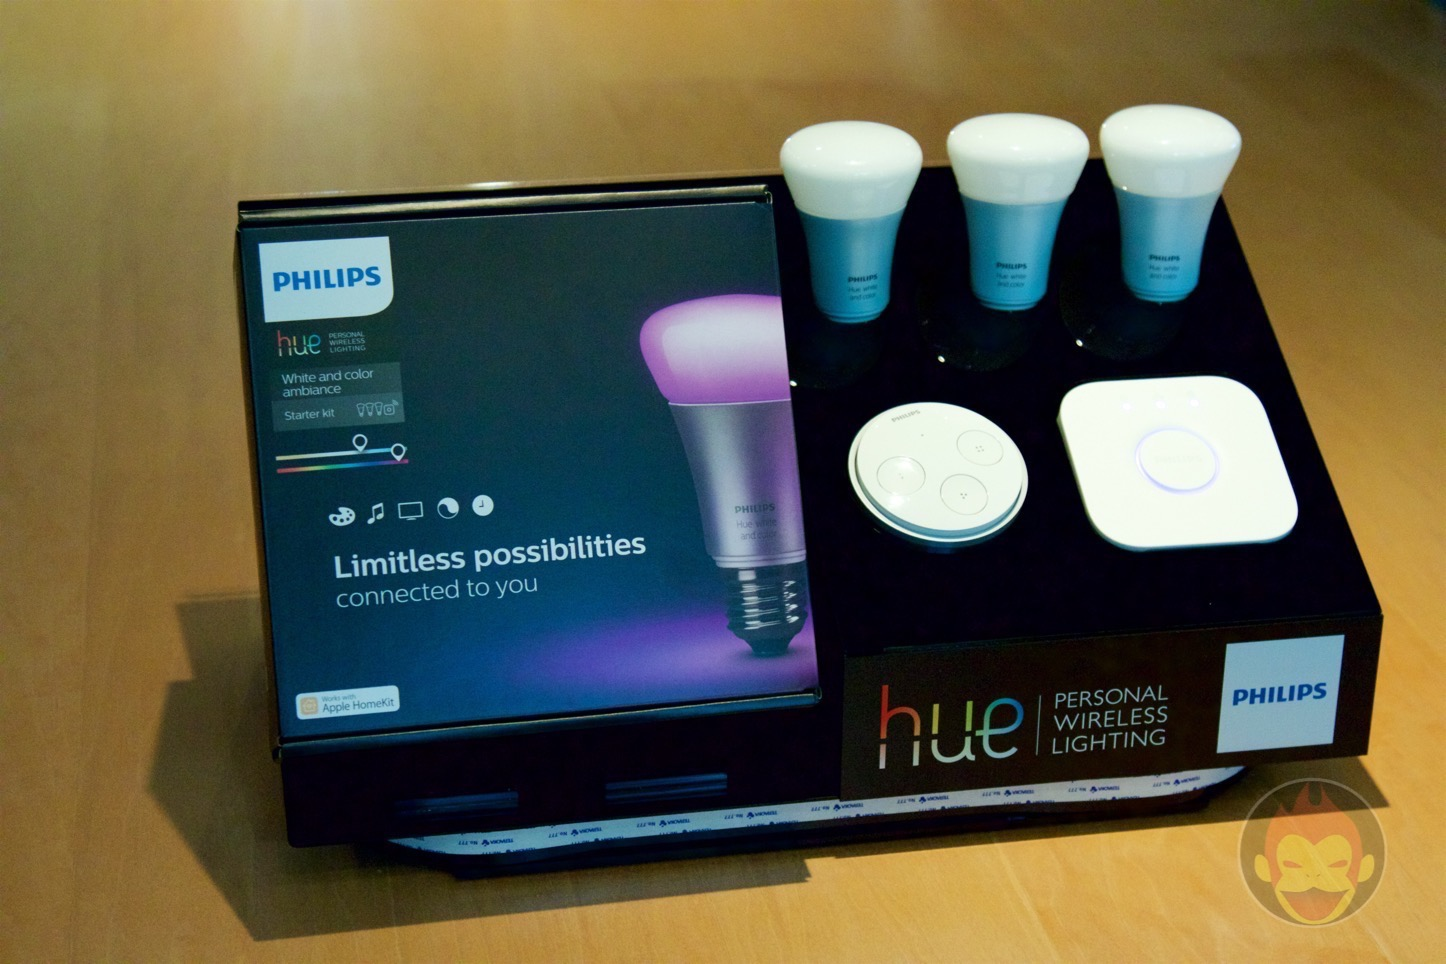 Philips-Hue-Apple-Store-Ginza-Event-12.jpg